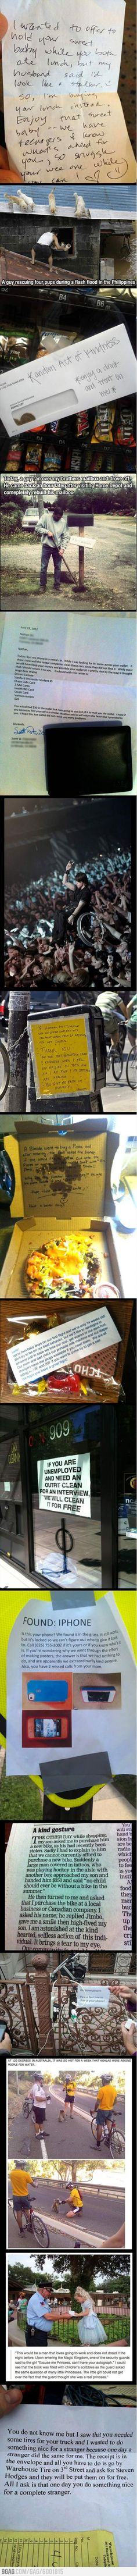 Random Acts of Kindness - this is proof that there are still kind and wonderful people in the world!!